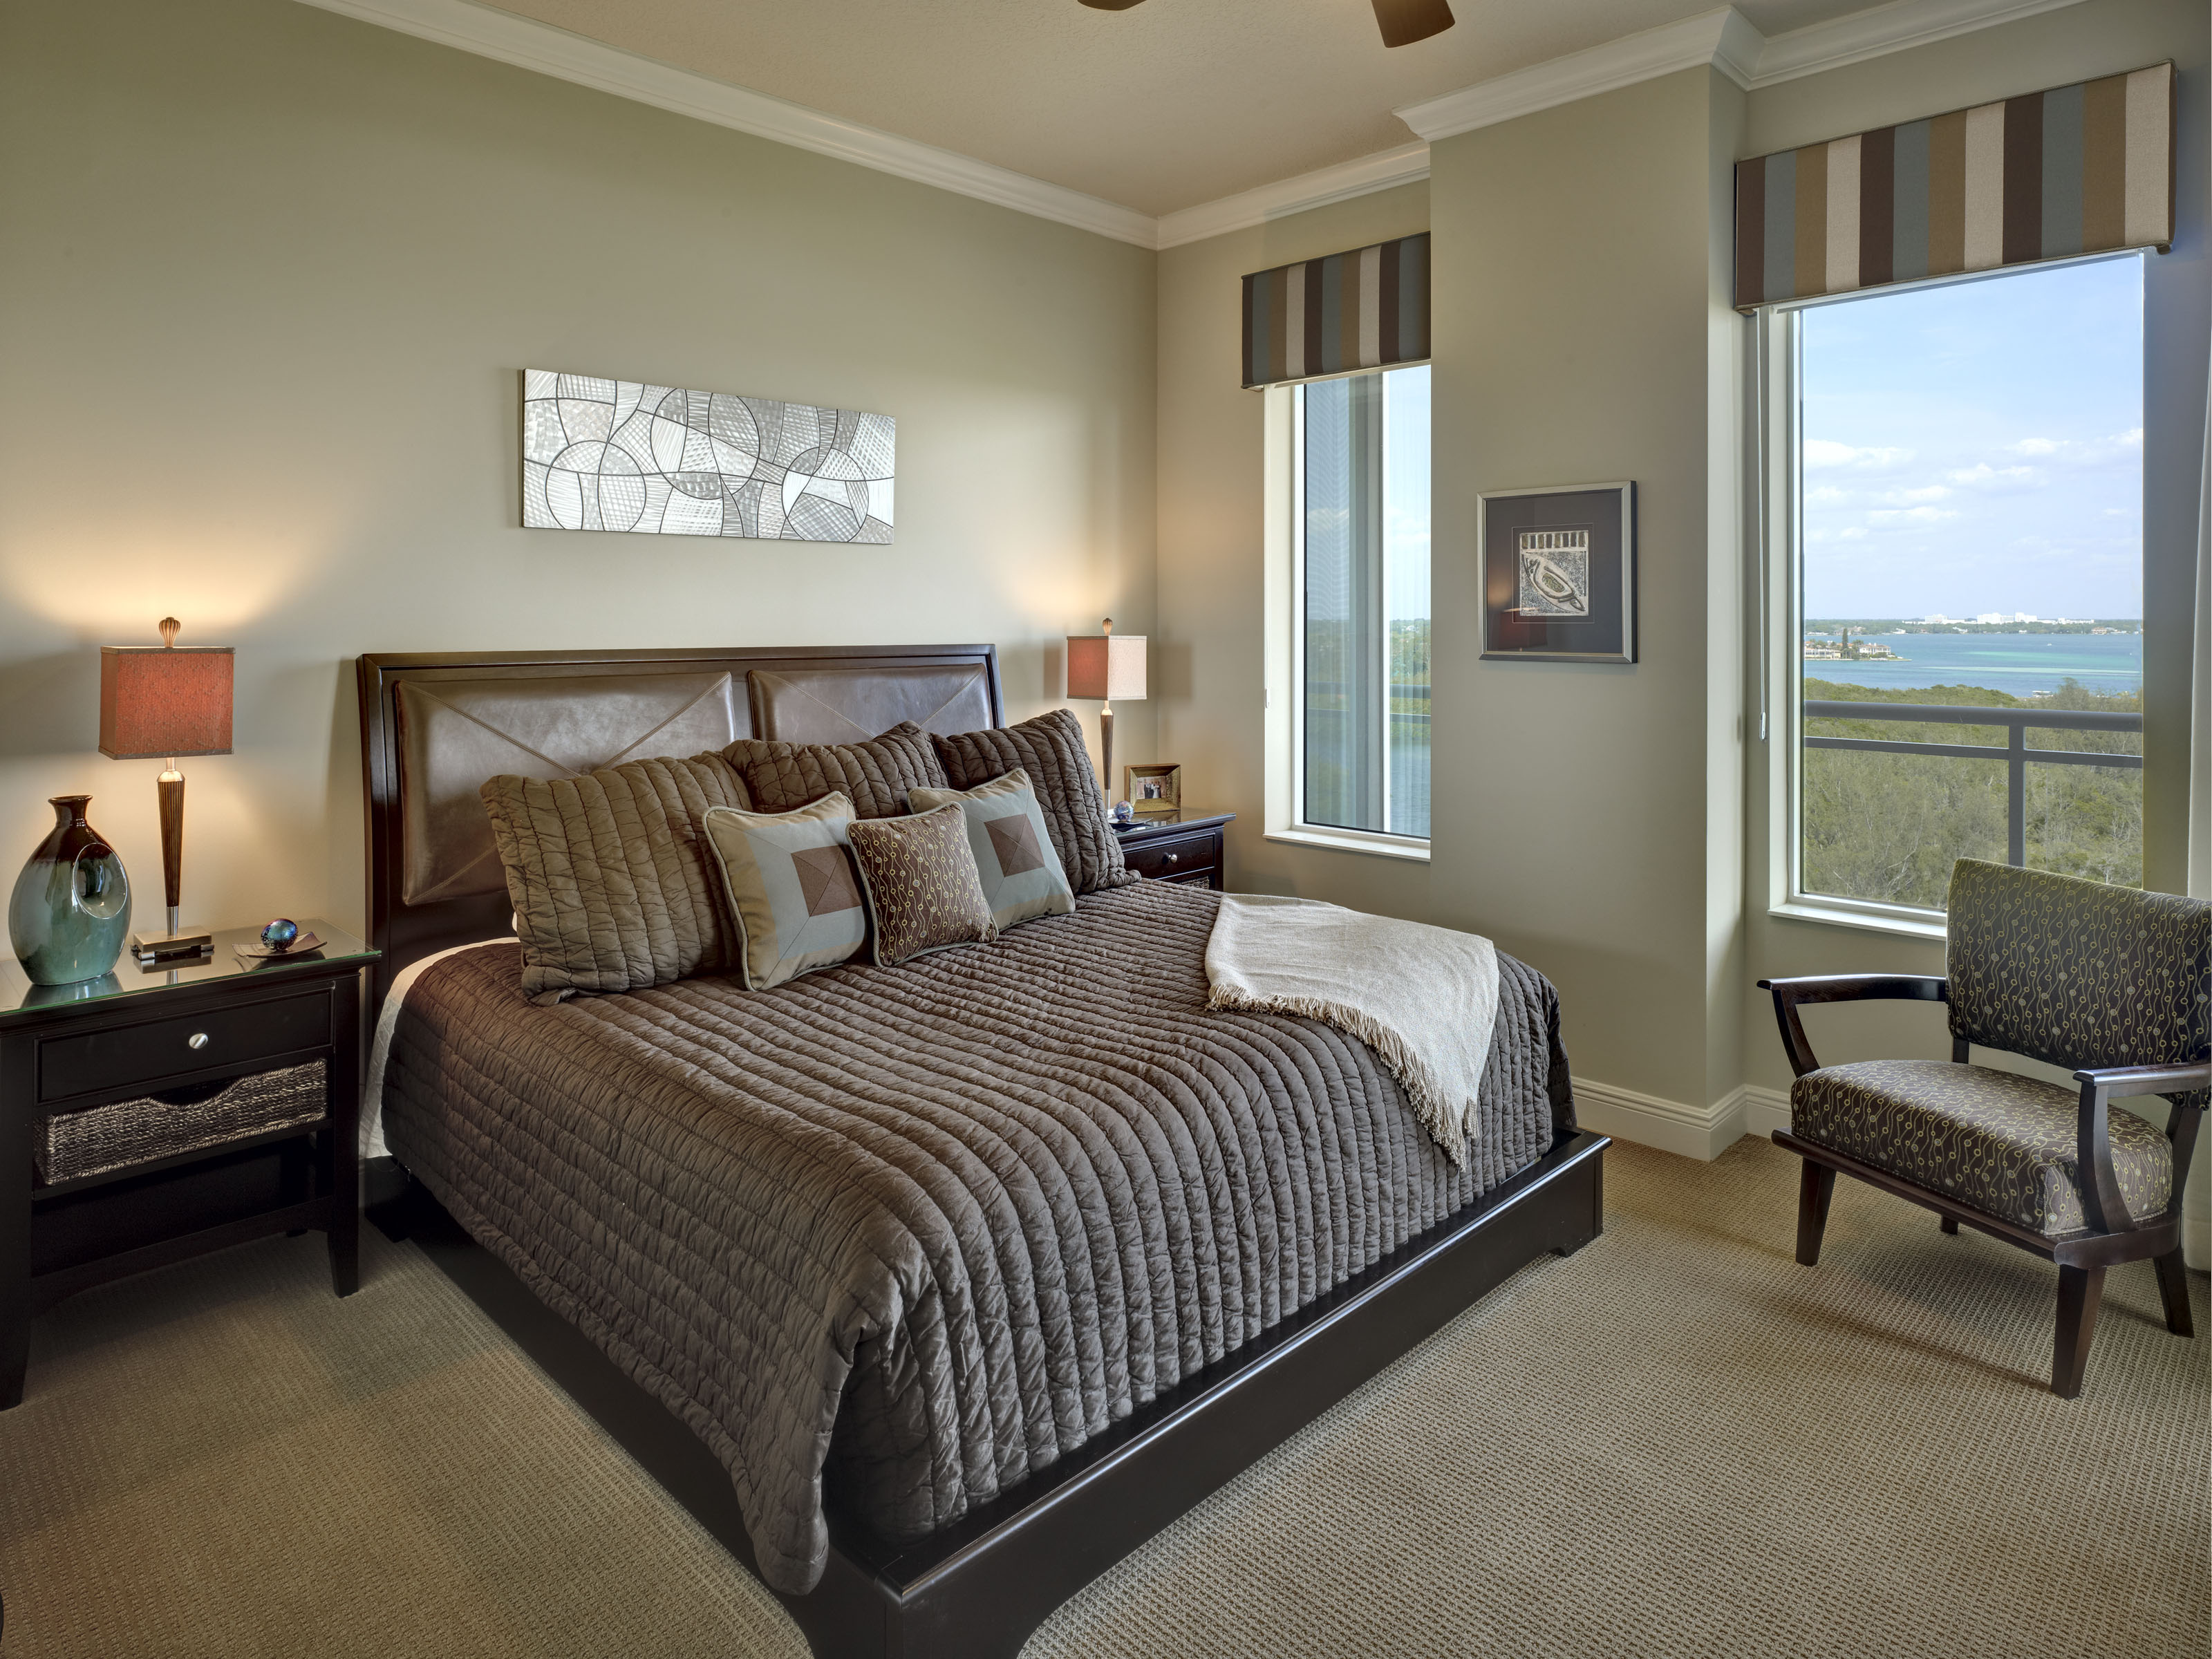 Beautiful Guest Bedrooms | Blog | Gribble Interior Group on Beautiful Room  id=99204